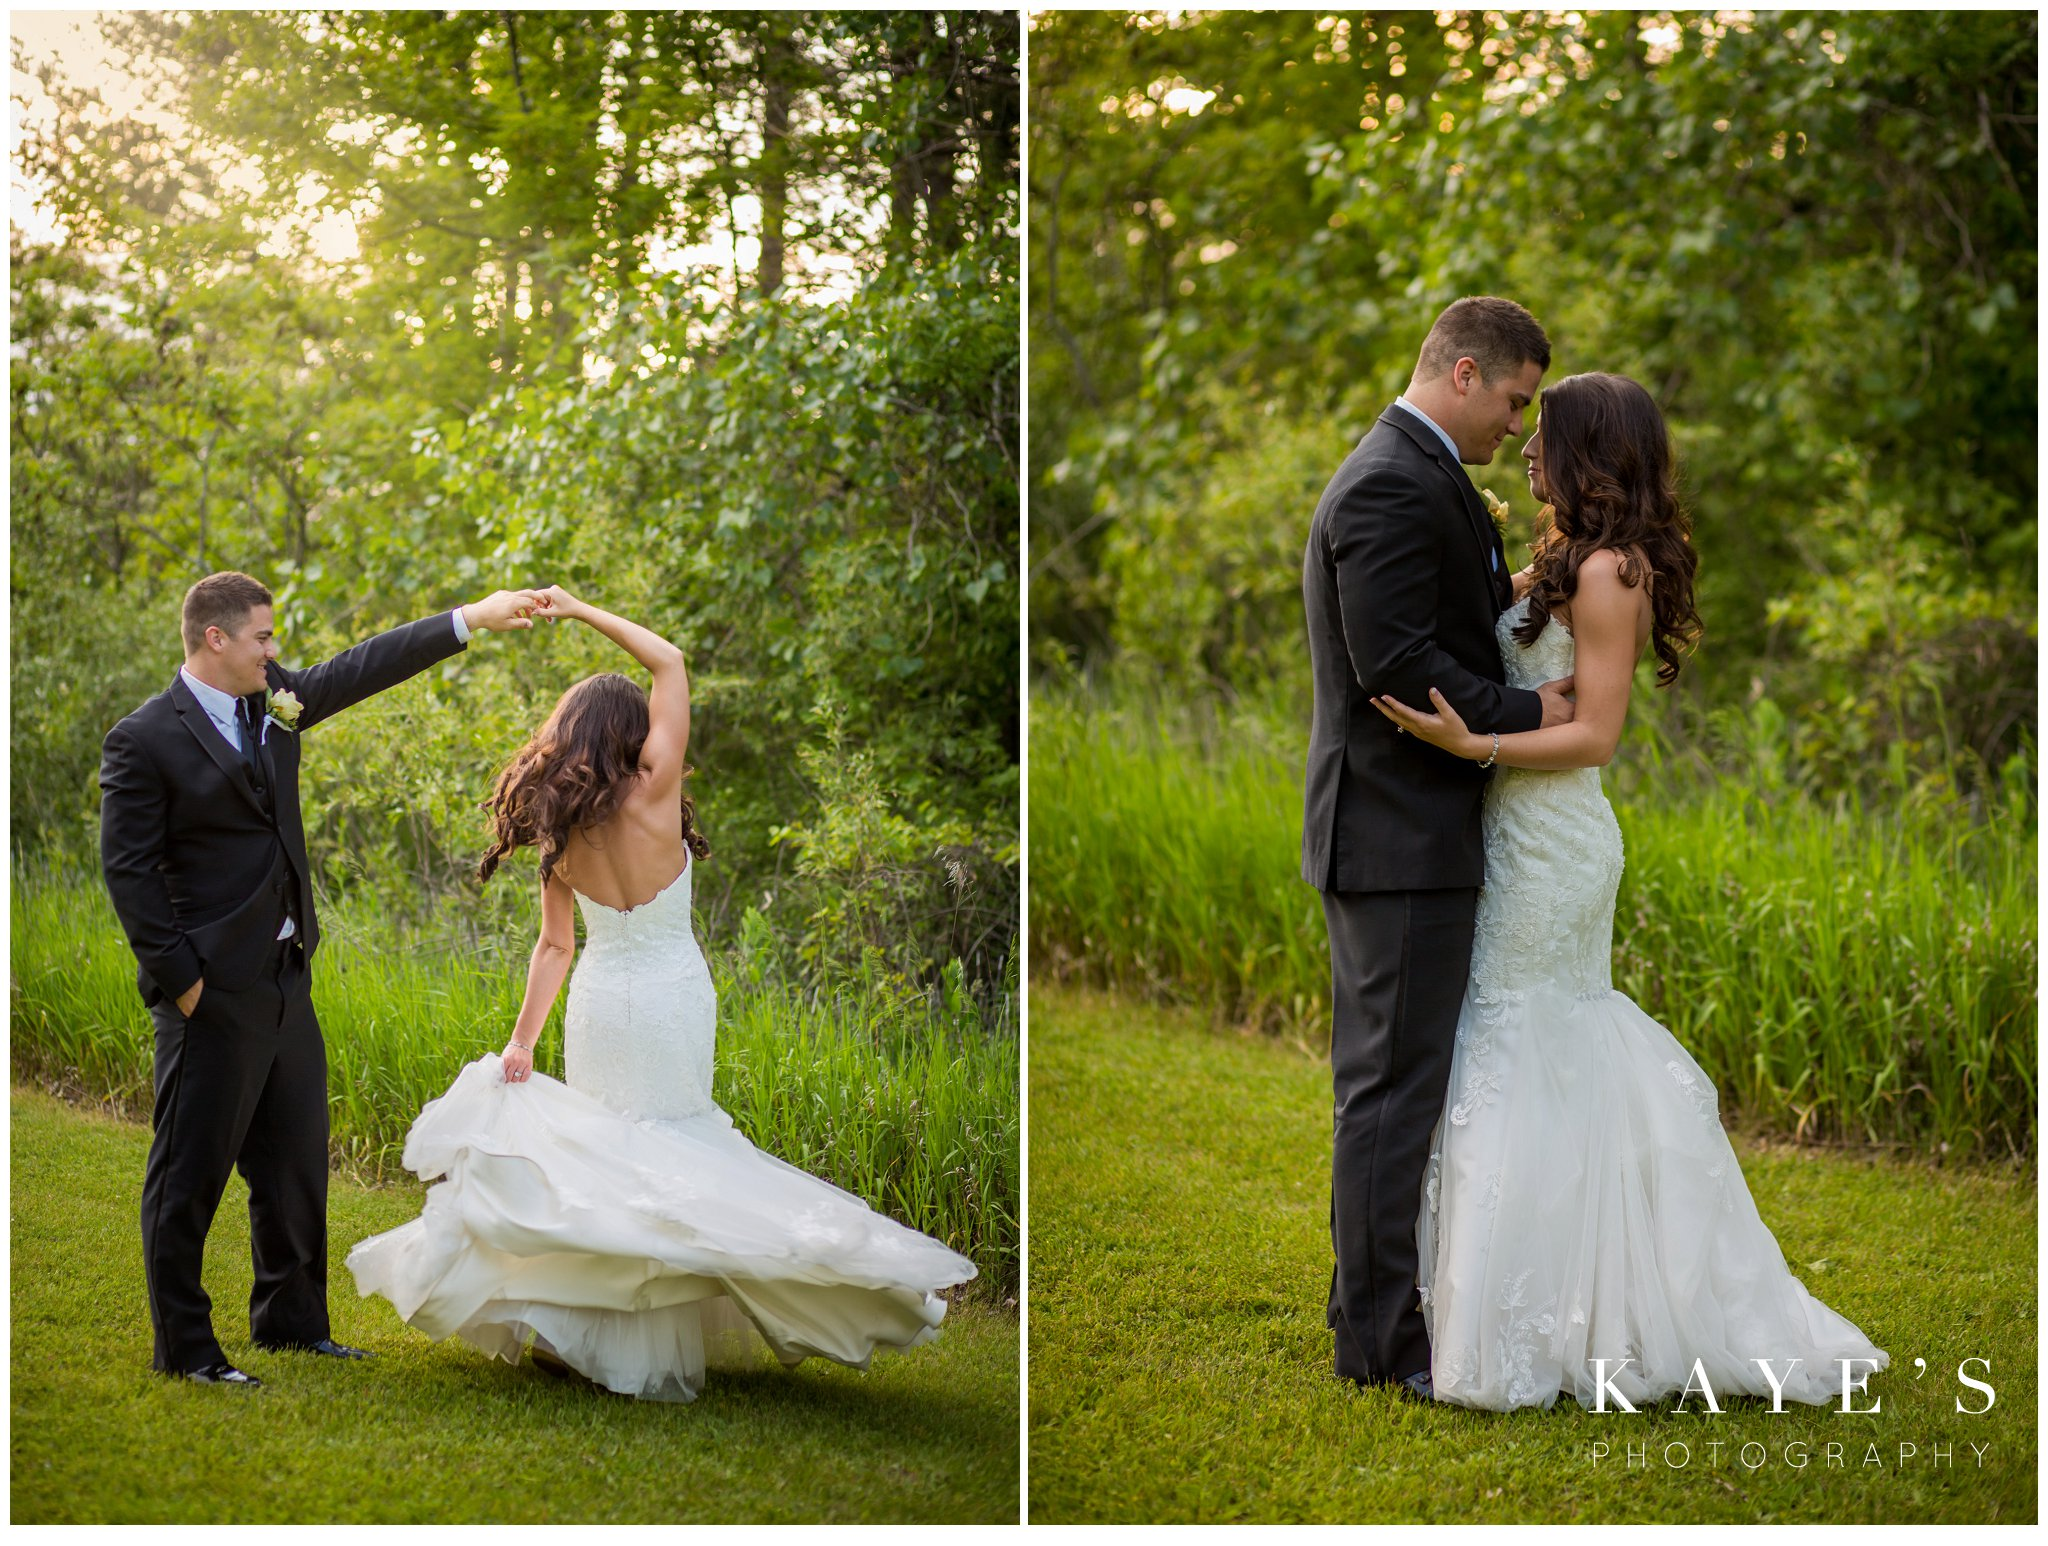 Kayes Photography- howell-michigan-wedding-photographer_0709.jpg